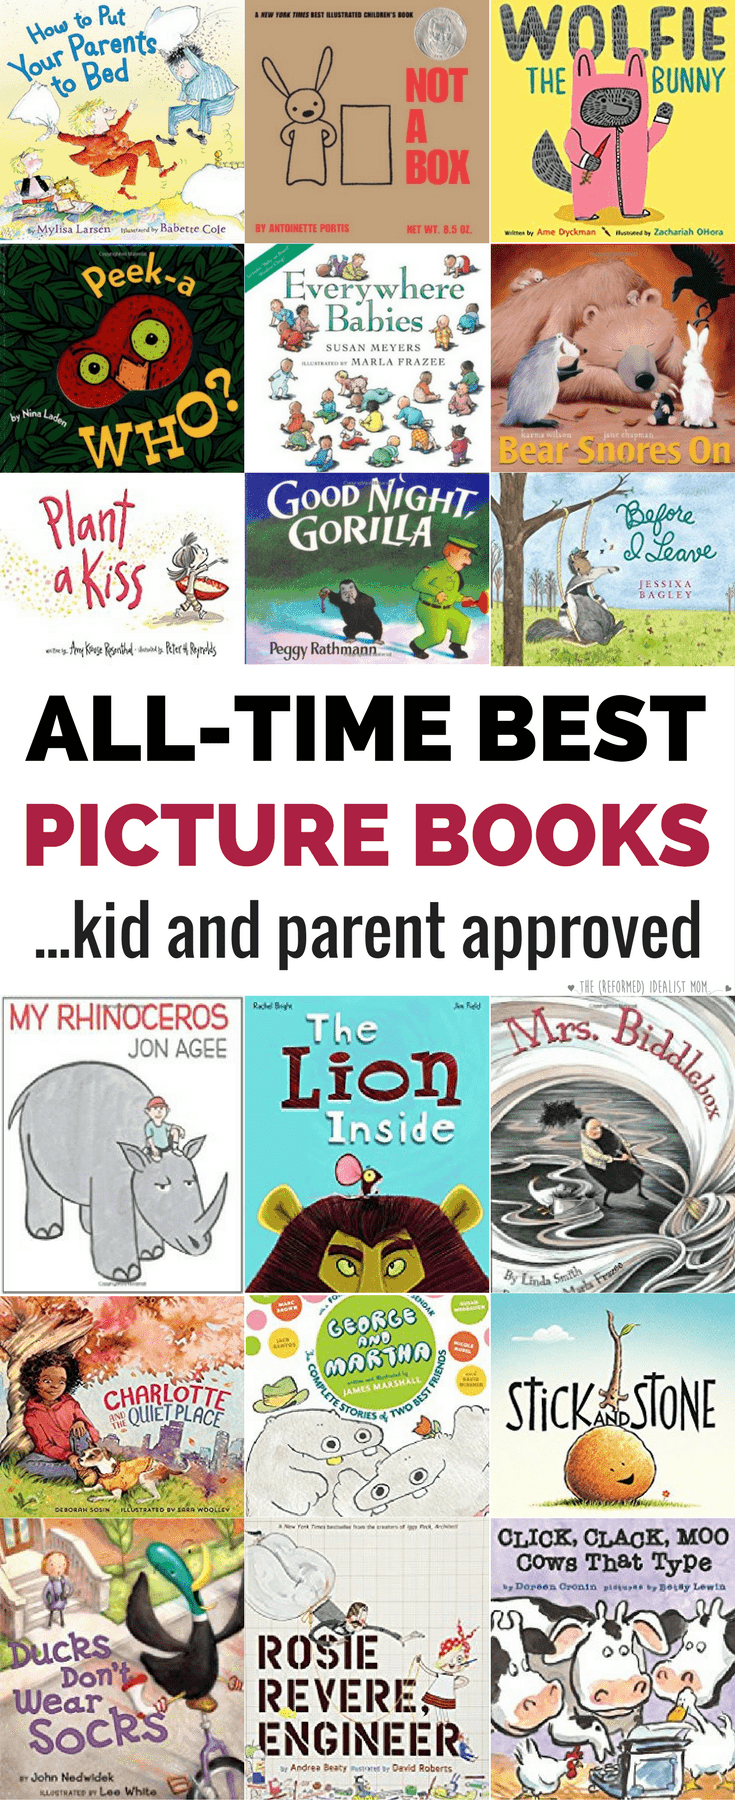 The Ultimate List Of The Best Picture Books Endorsed By Kids And